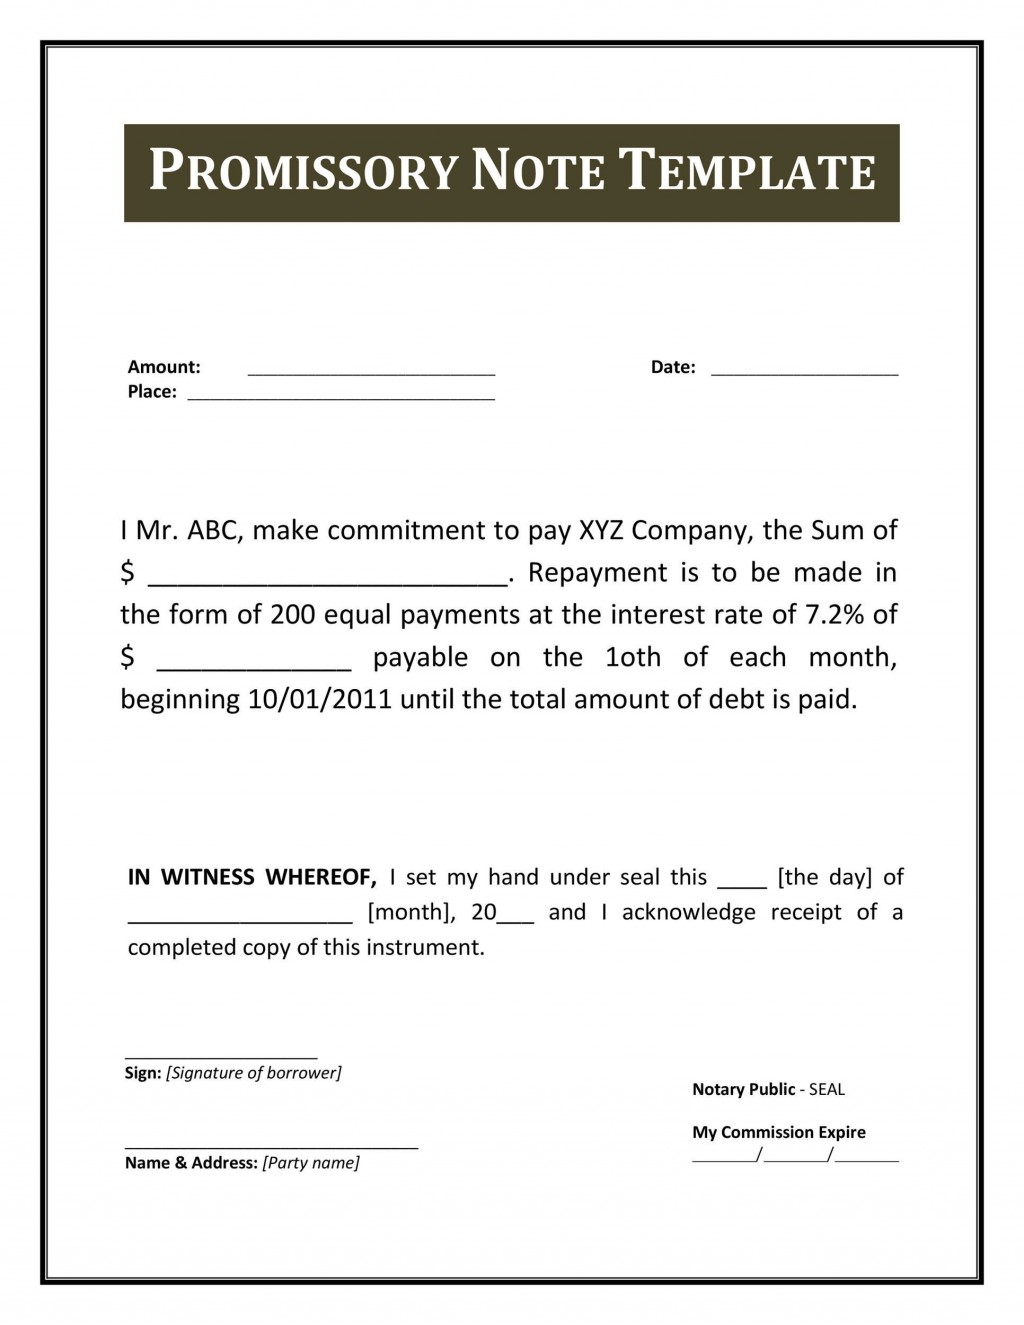 007 Dreaded Promissory Note Template Free High Resolution  Pdf Florida Blank FormLarge